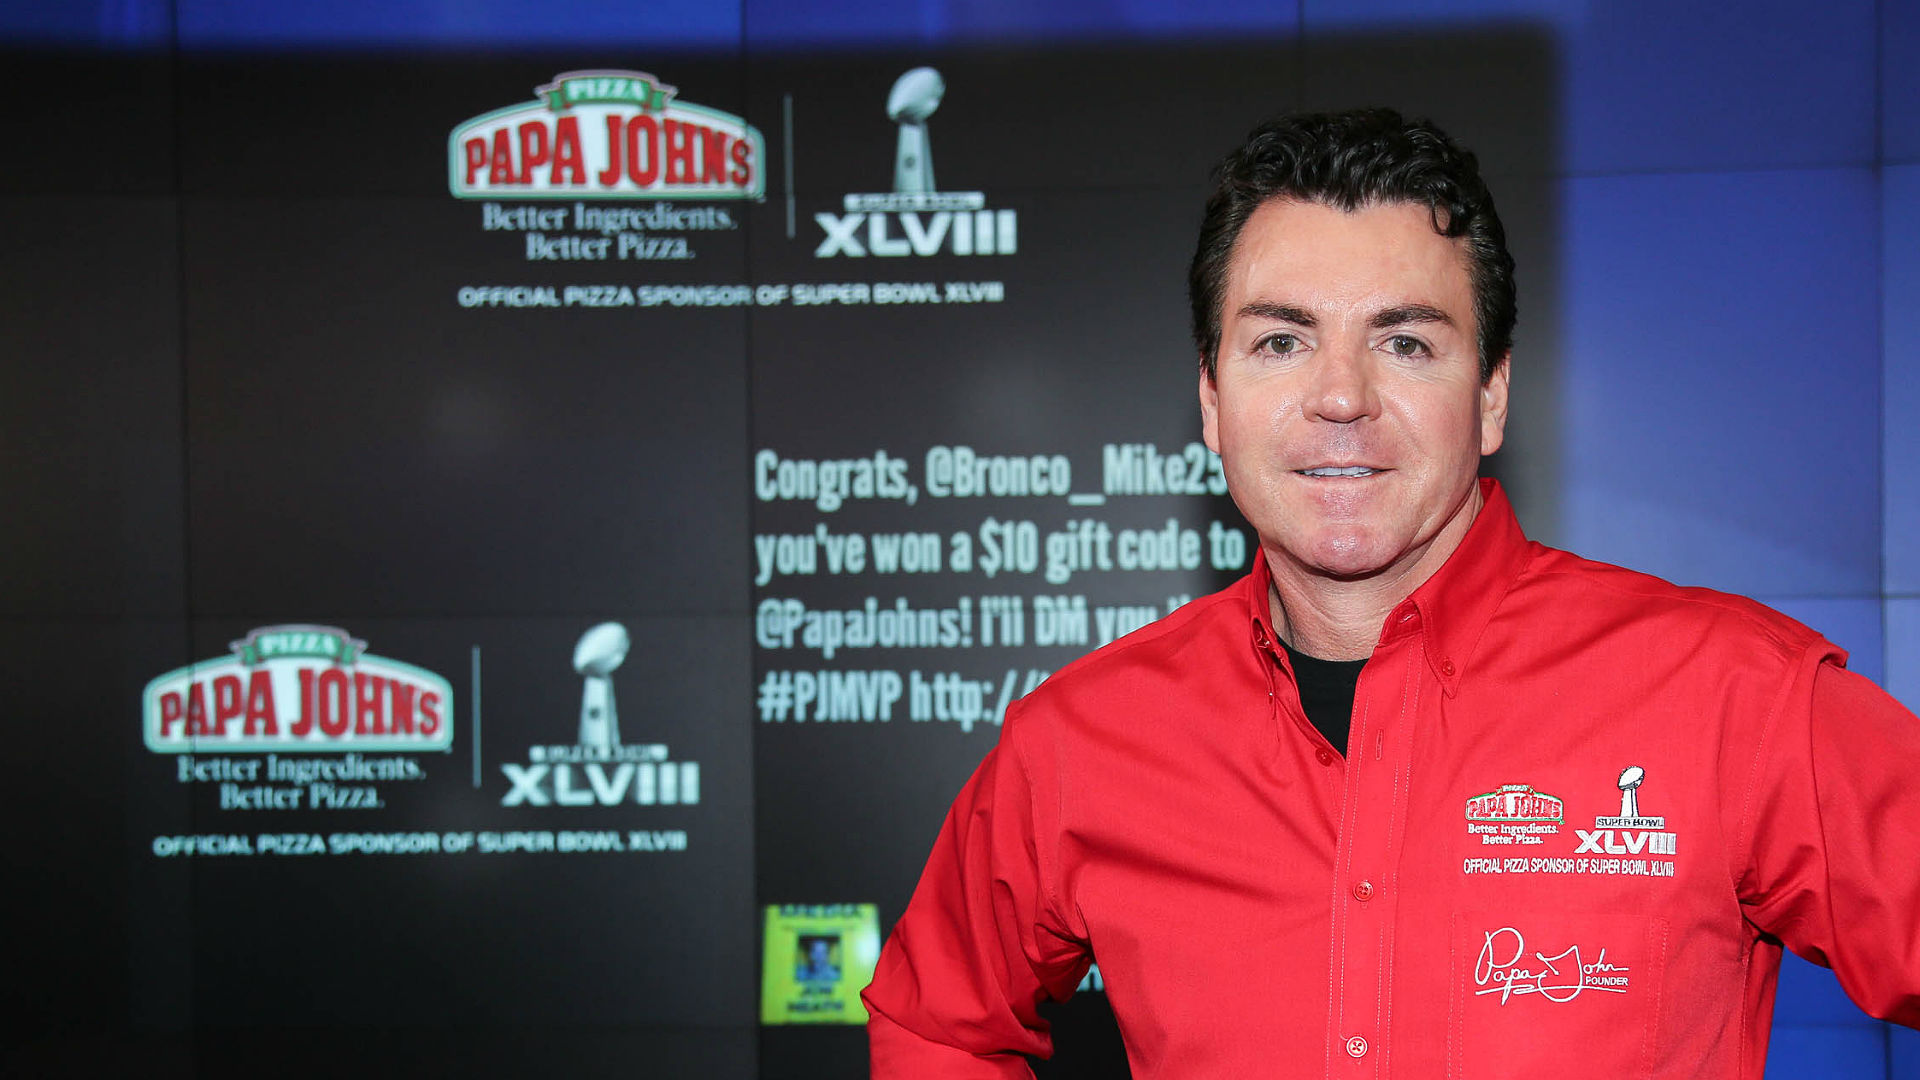 Papa John's flips the bird to neo-Nazis in fiery statement on Twitter